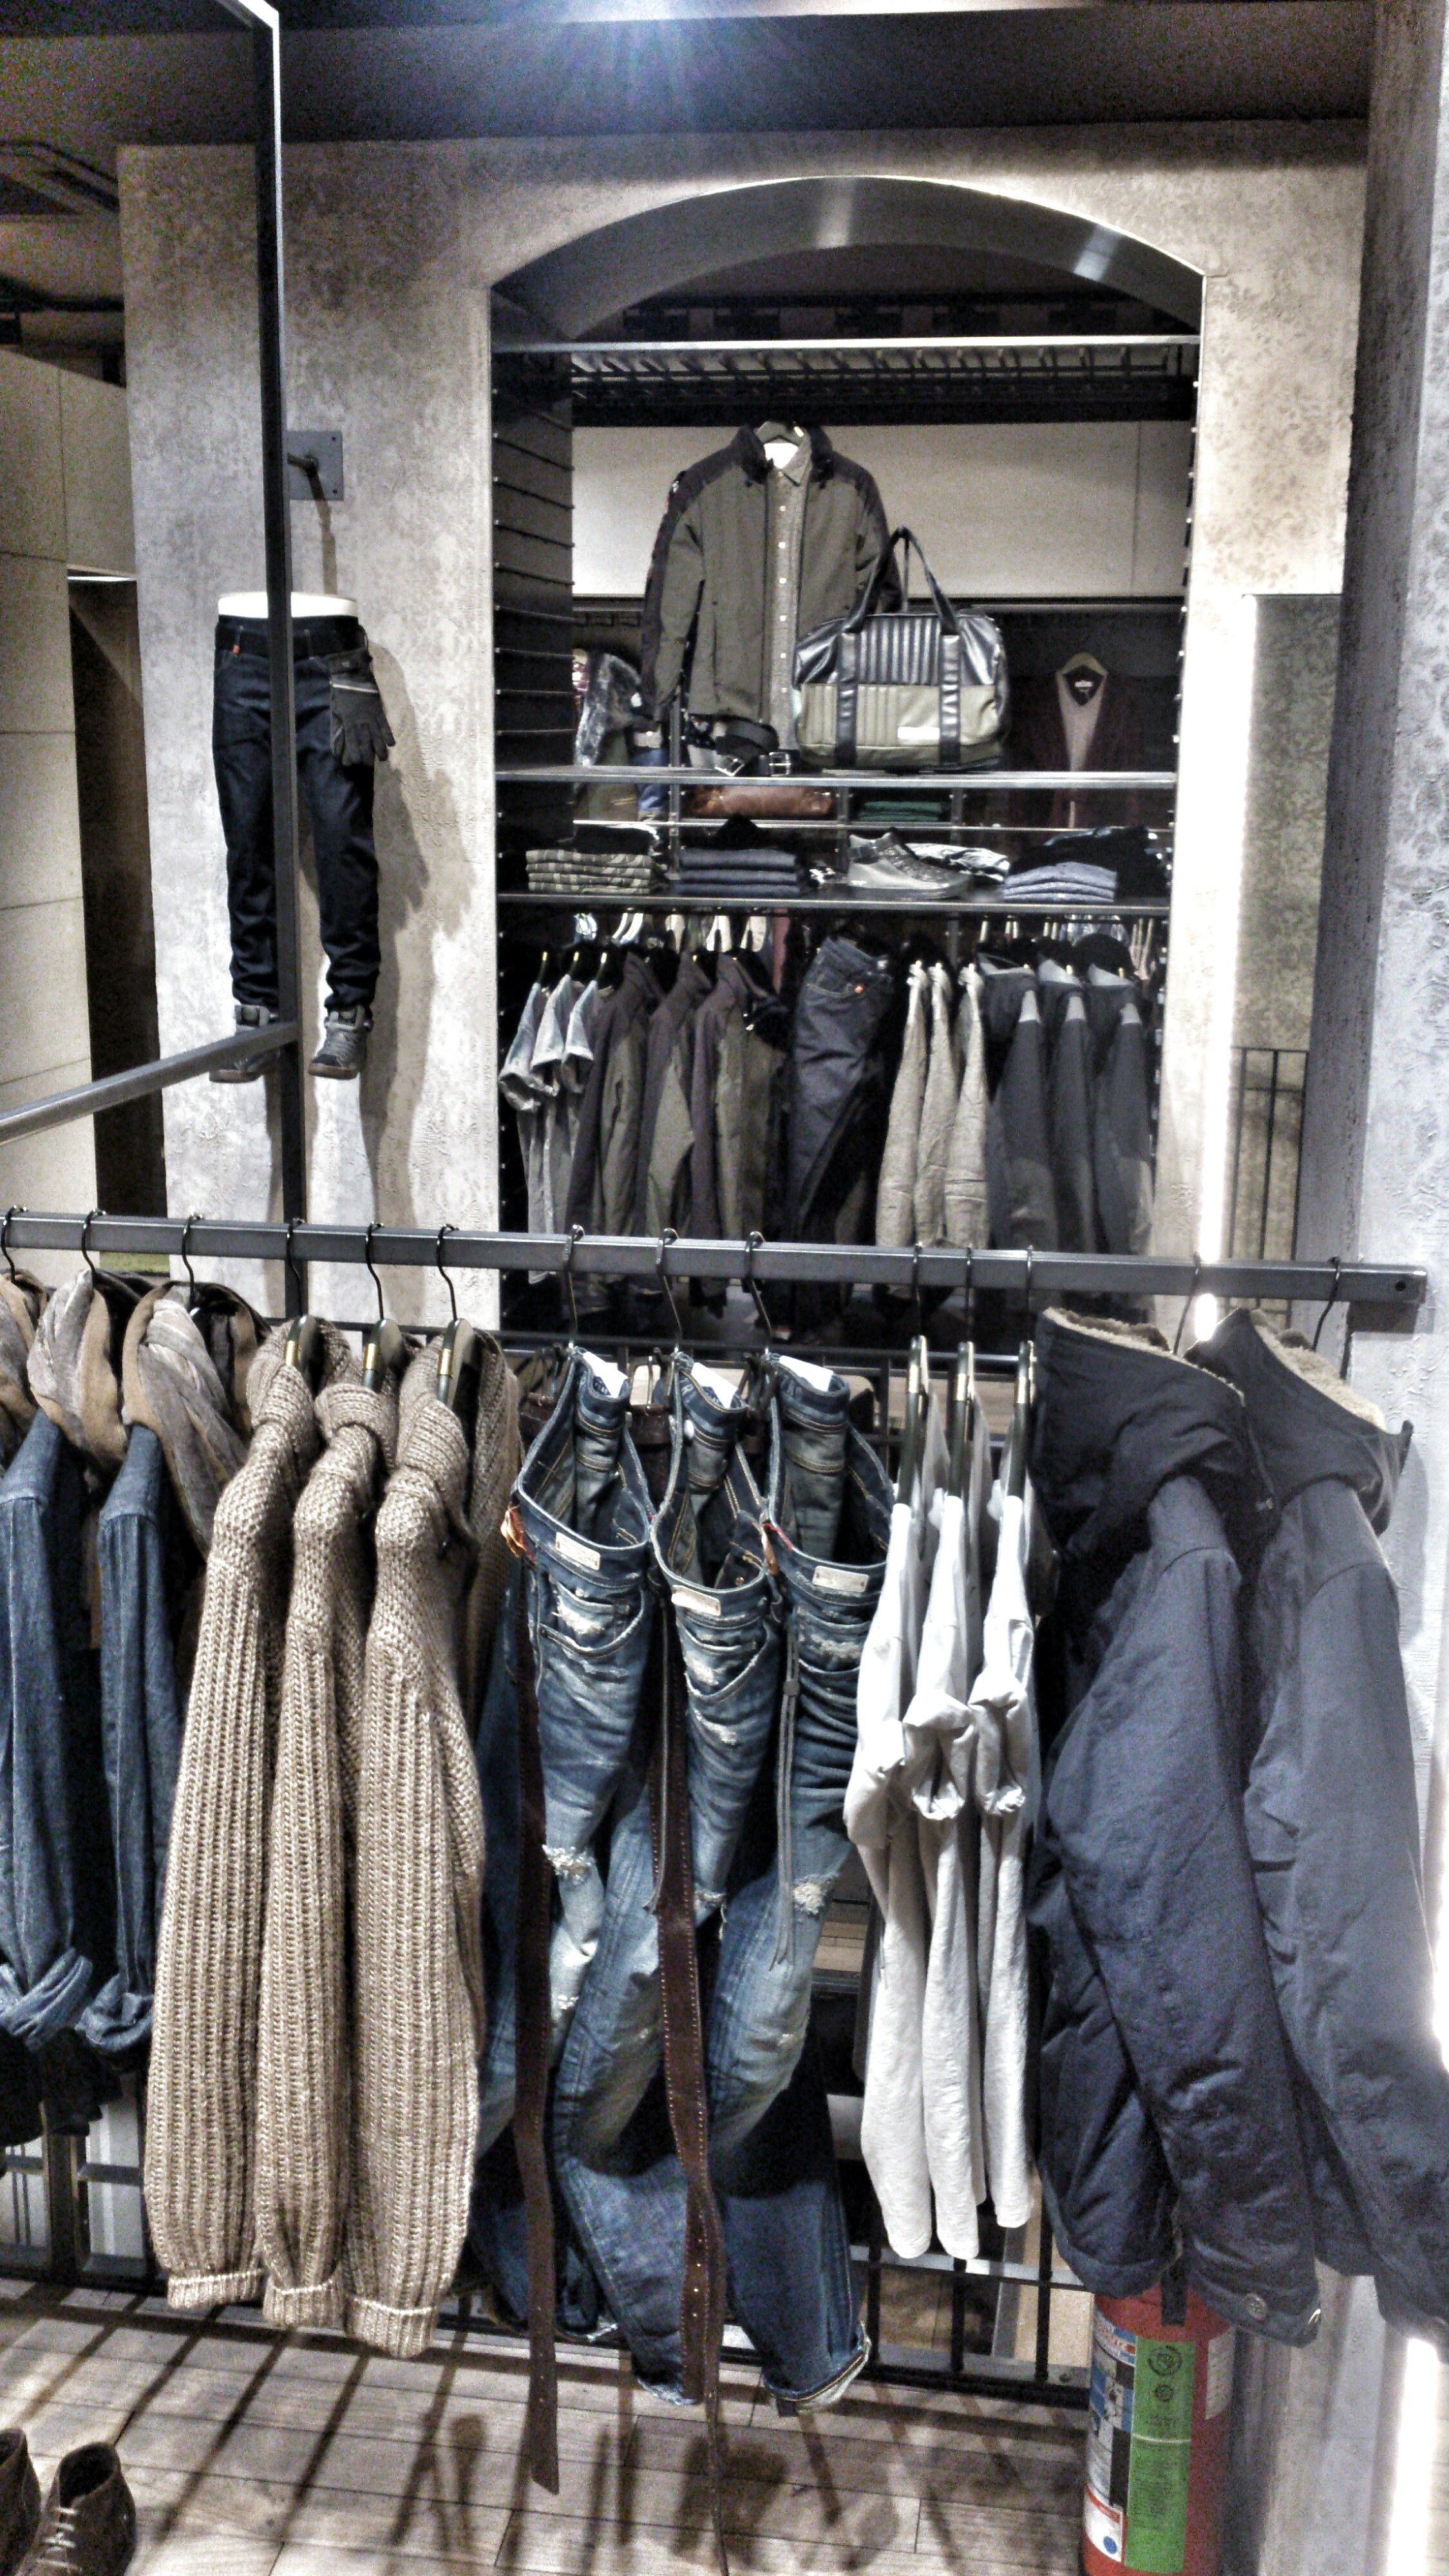 MM   VM and the transformation of products to emotions.   #instore #visualmerchandising #vm #mensstyle #replay #jeans #store #düsseldorf #outfits #vm #markomargeta #mmlvm #fashion #detail #indigo #denim #thesilentdialogue Marko Margeta   Visual Merchandising die